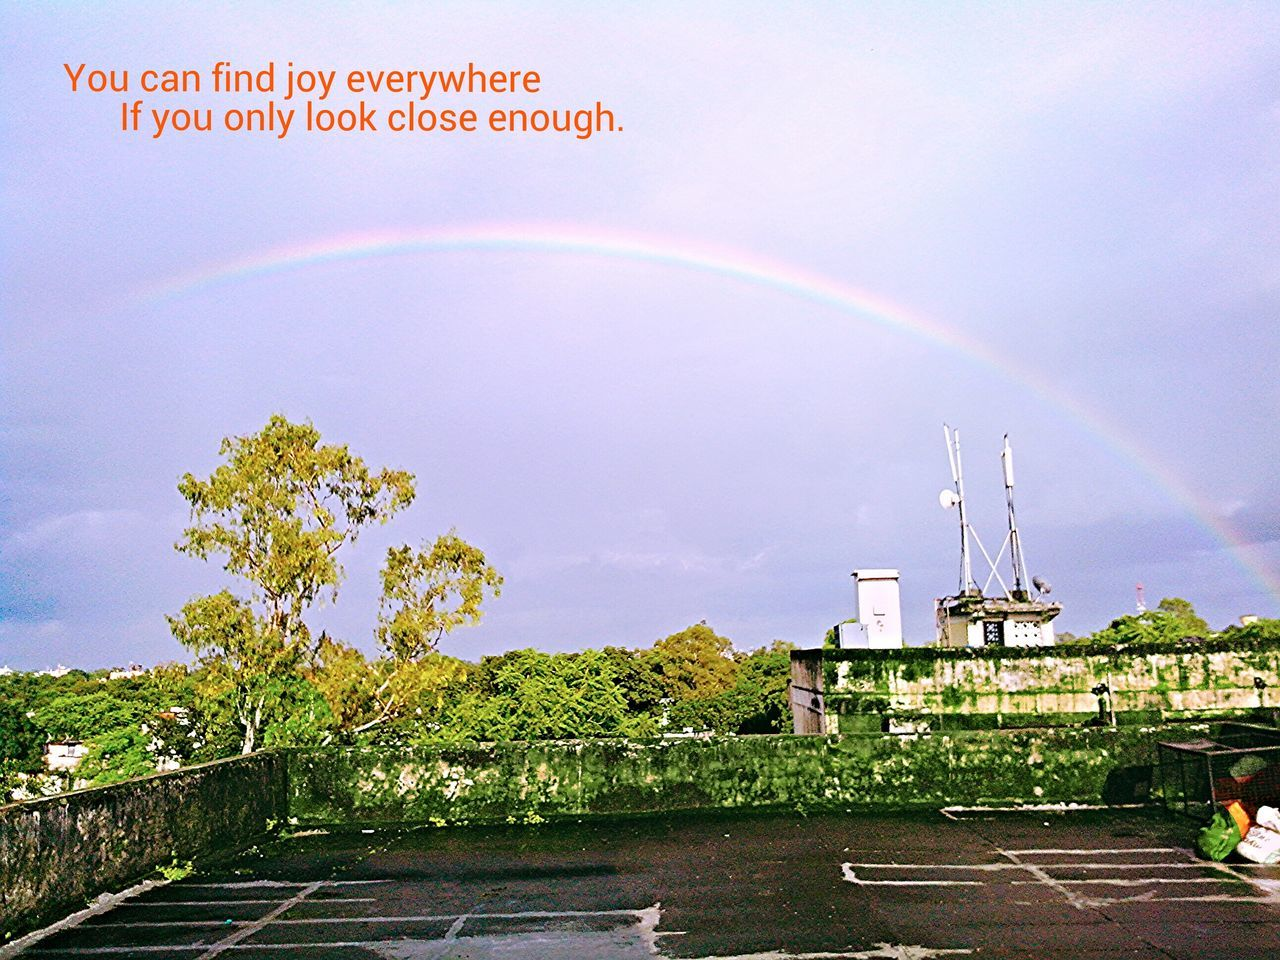 rainbow, double rainbow, sky, day, outdoors, no people, cloud - sky, architecture, building exterior, built structure, tree, nature, beauty in nature